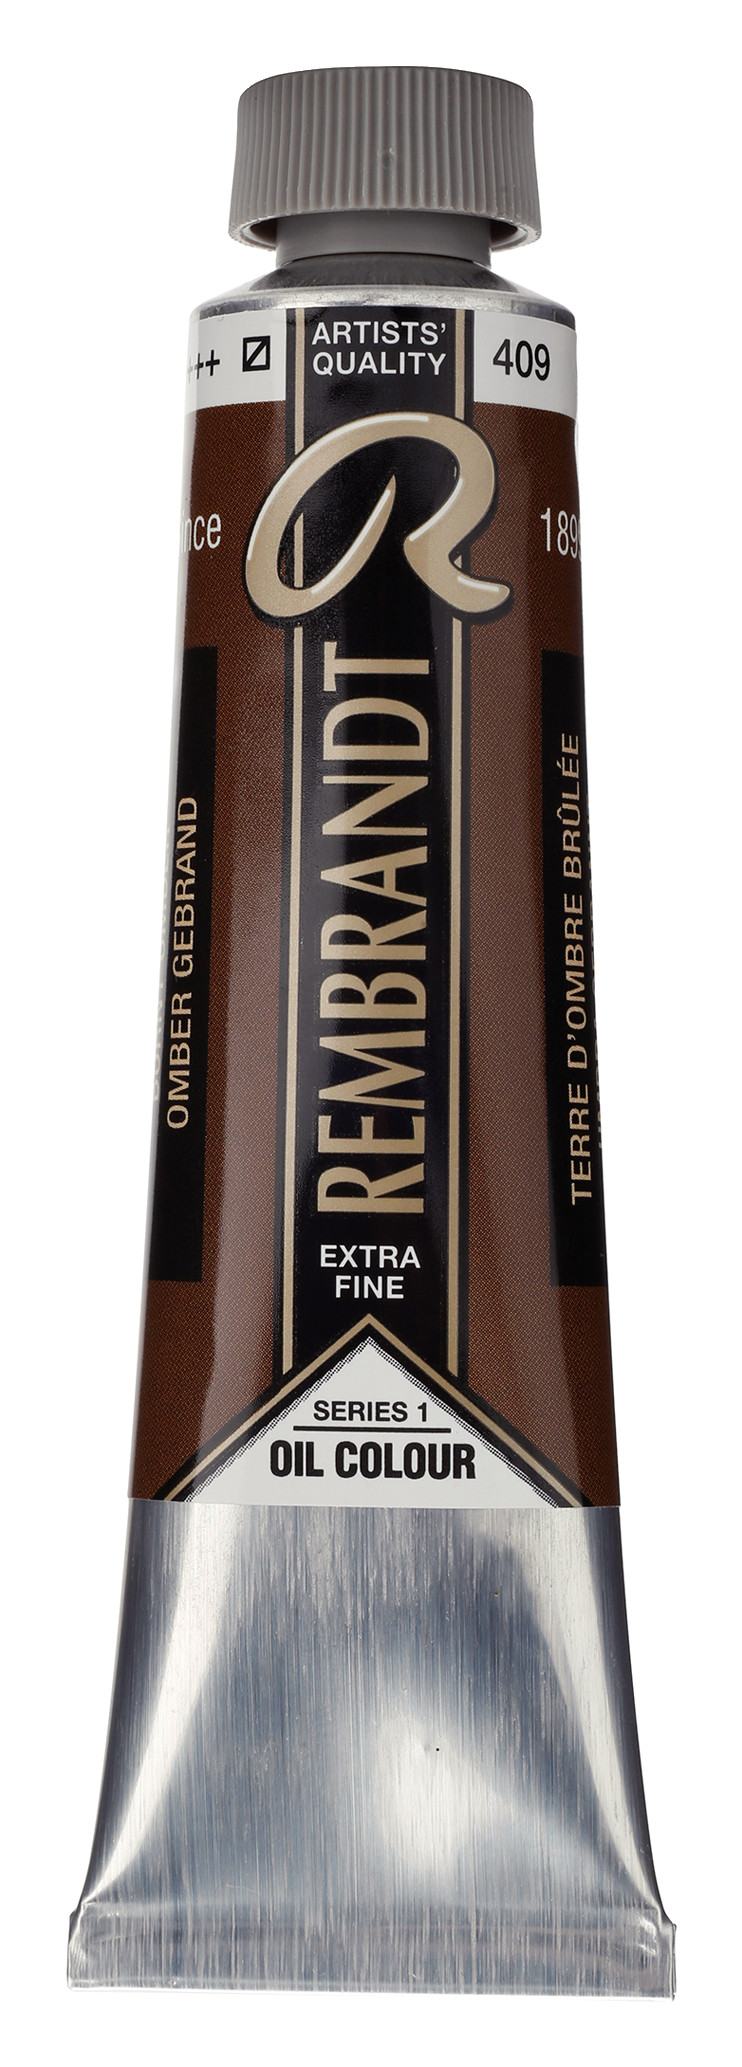 Rembrandt Oil colour Paint Burnt Umber (409) 40ml Tube